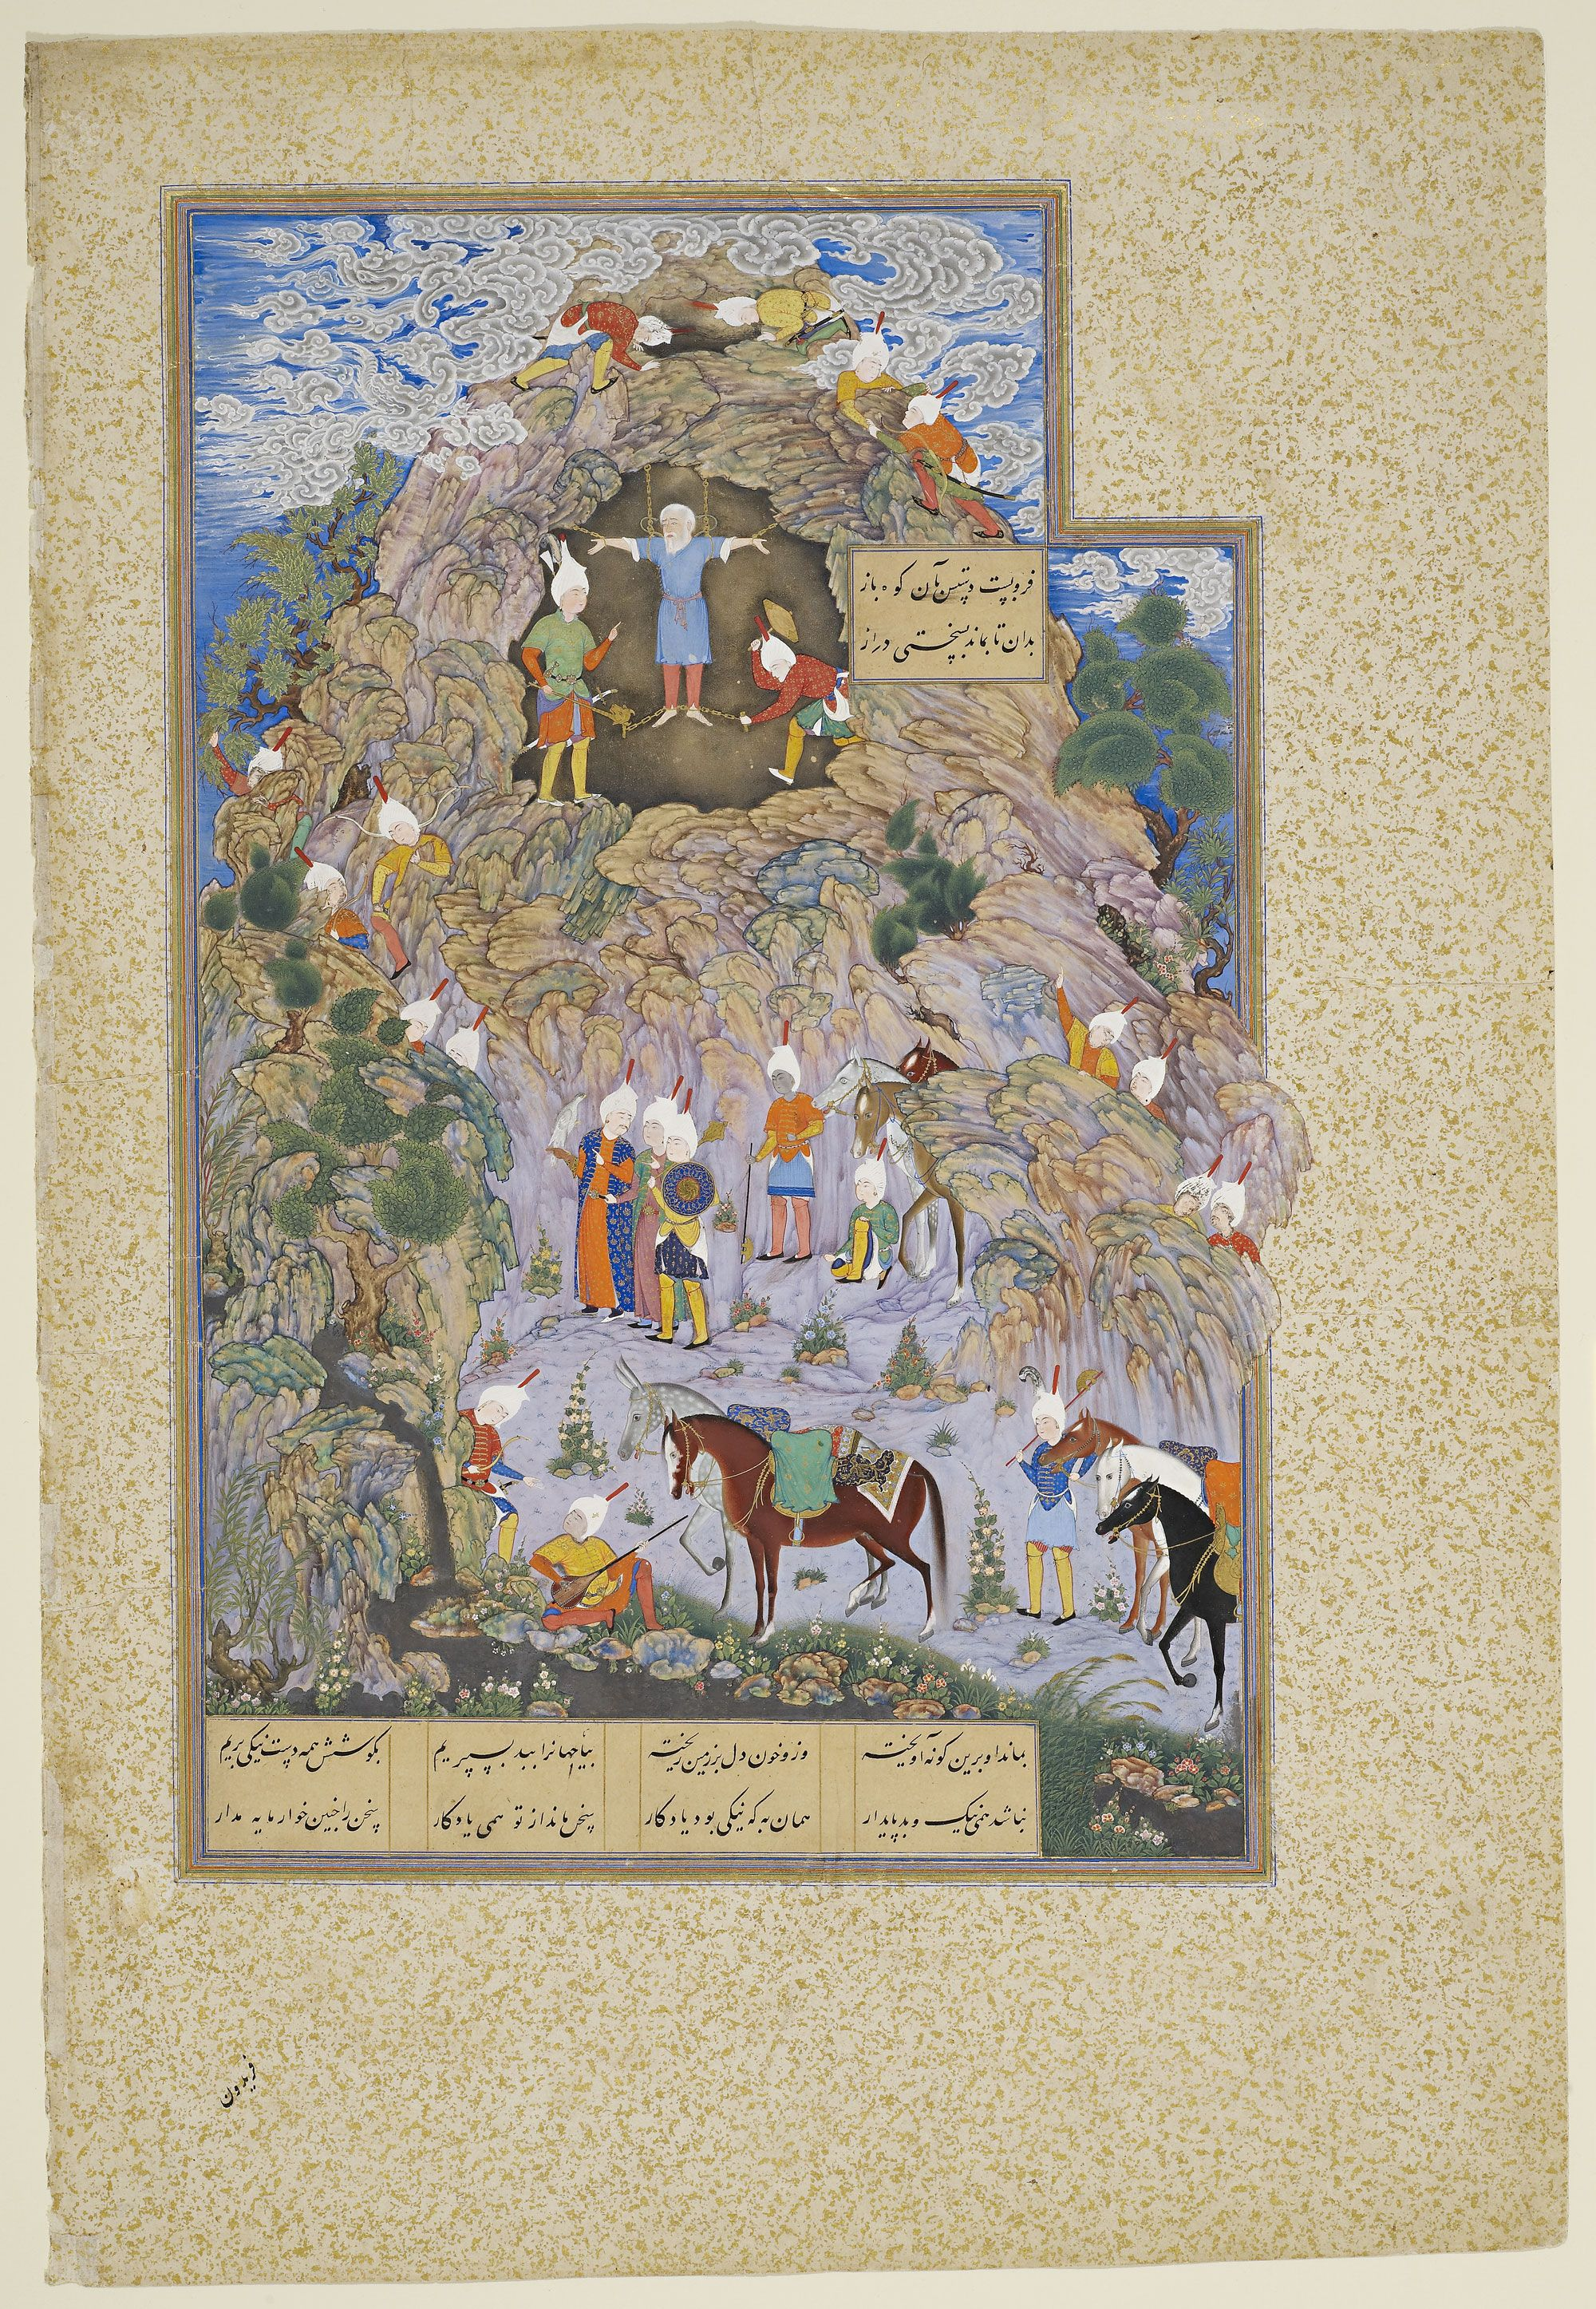 Folio From The Shahnama Of Shah Tahmasp: The Death Of Zahhak Geography Iran Period Safavid, circa 1535 CE Dynasty Safavid Materials and technique Opaque watercolor, gold, and ink on paper Dimensions 47 x 31.8 cm  http://www.akdn.org/museum/detail.asp?artifactid=1729